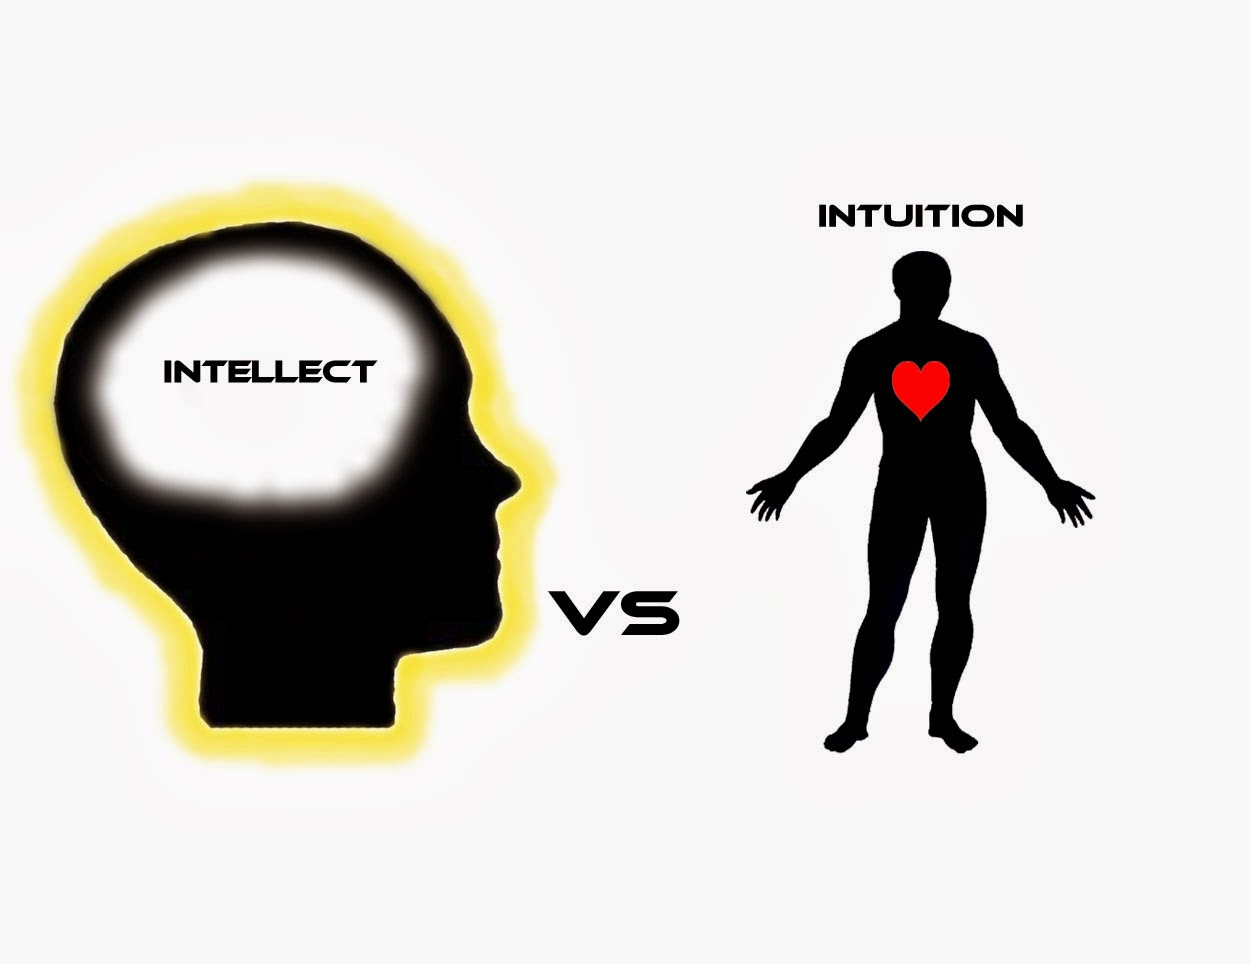 intellect-vs-intuition.jpg